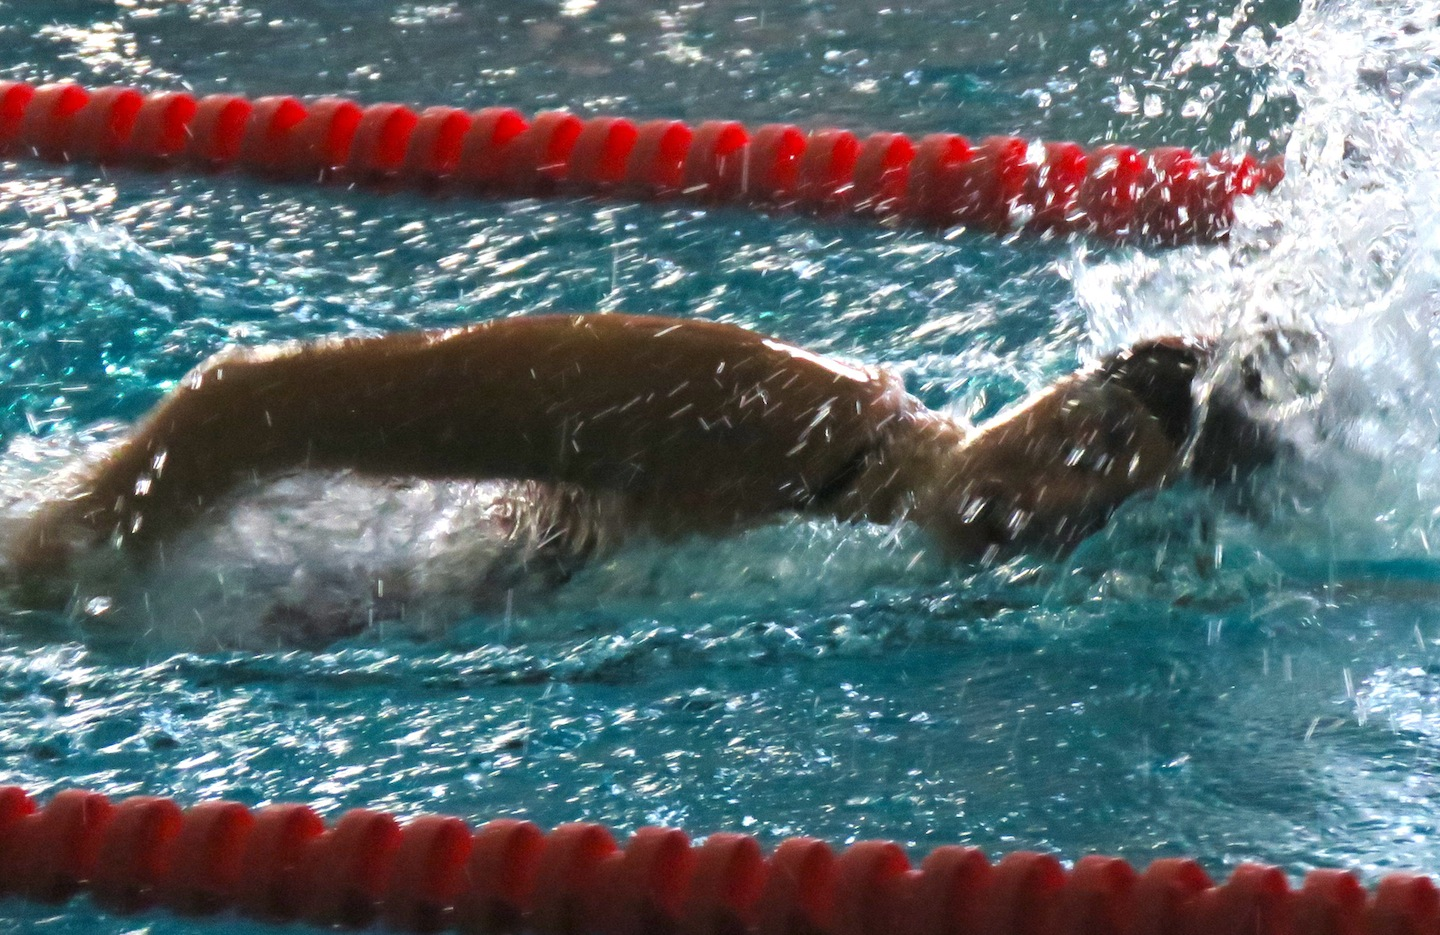 Danielle Carlson swims during a meet versus Lewiston-Porter last Friday. Carlson won the 200-yard freestyle with a time of 2:01.07, the 100-yard freestyle with a time of 55.05 and was part of the 200-yard freestyle relay team, which took first place with a time of 1:48.34. (Photo by David Yarger)